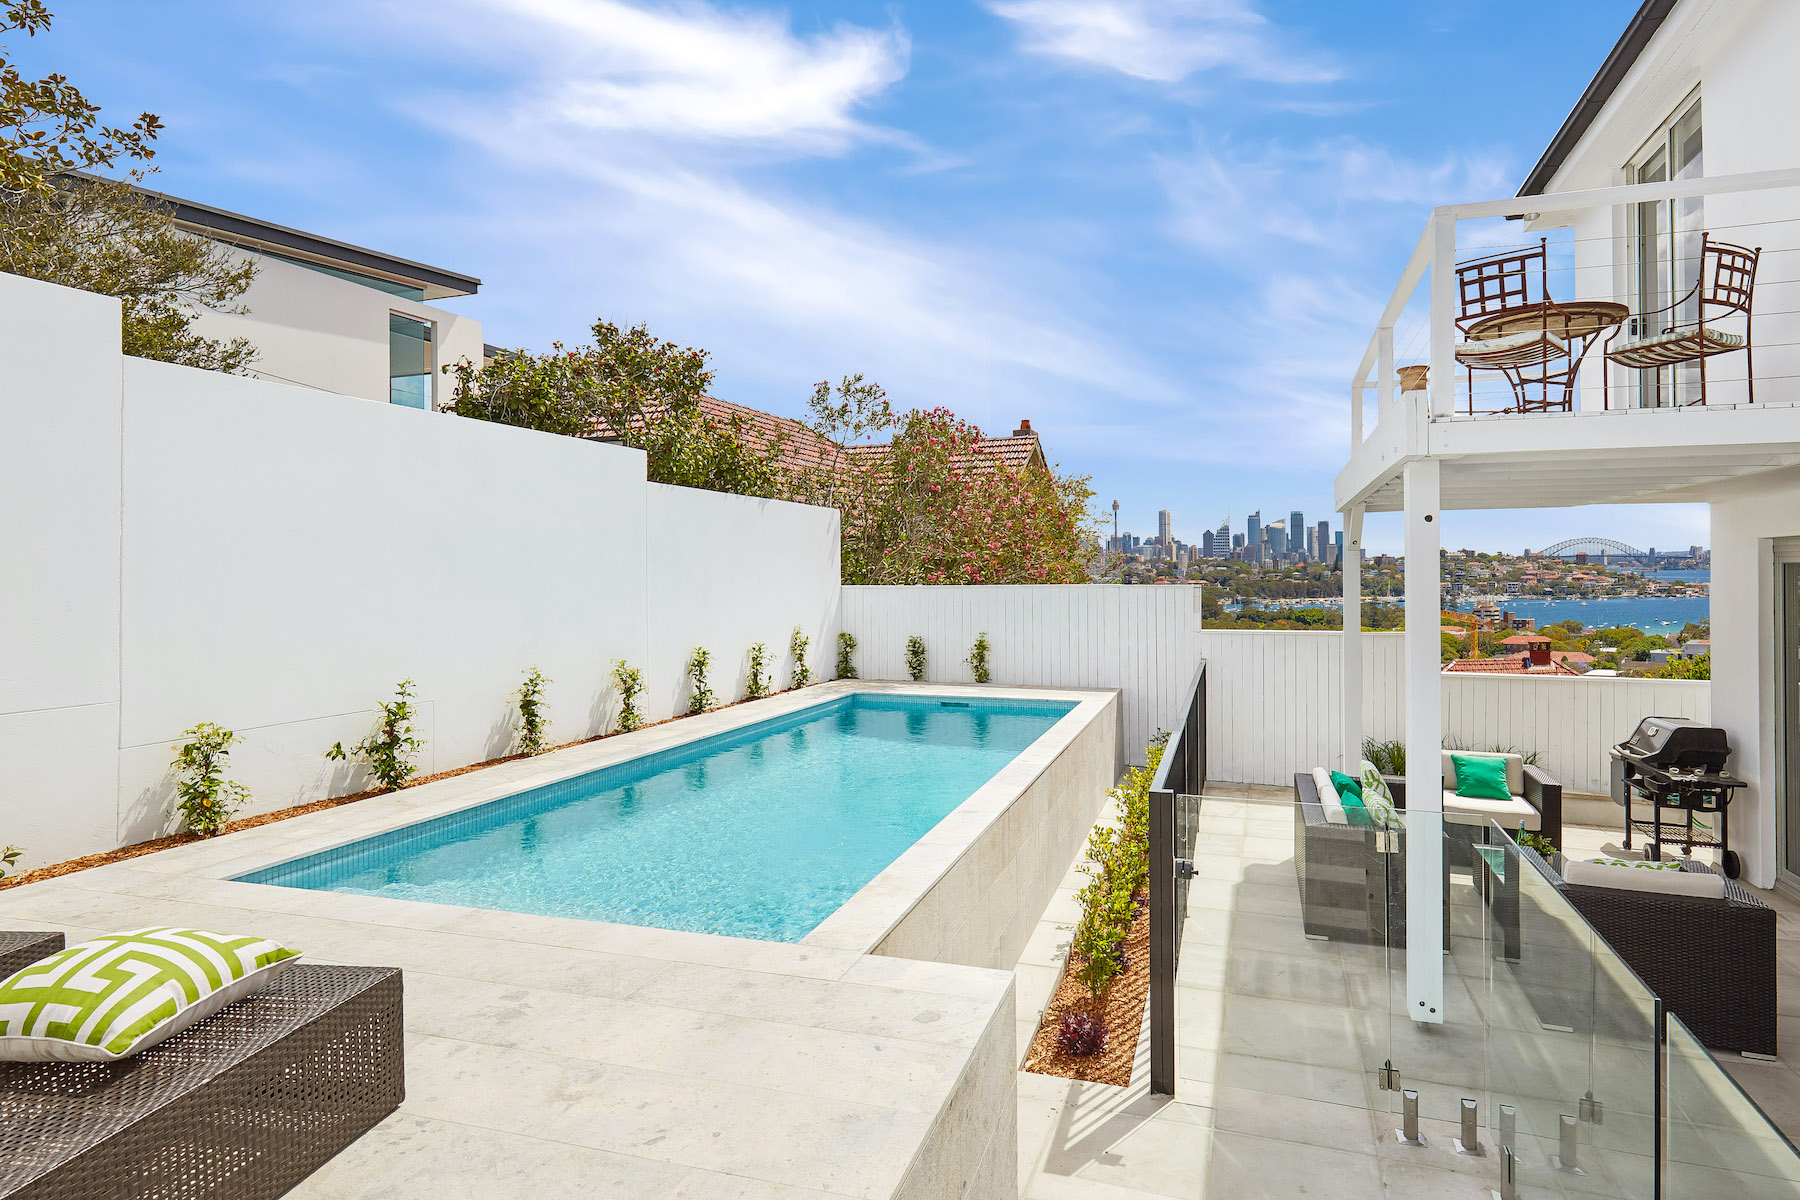 Single Family Homes for Sale at 1 Victory Street, Rose Bay Rose Bay, Sydney, New South Wales Australia